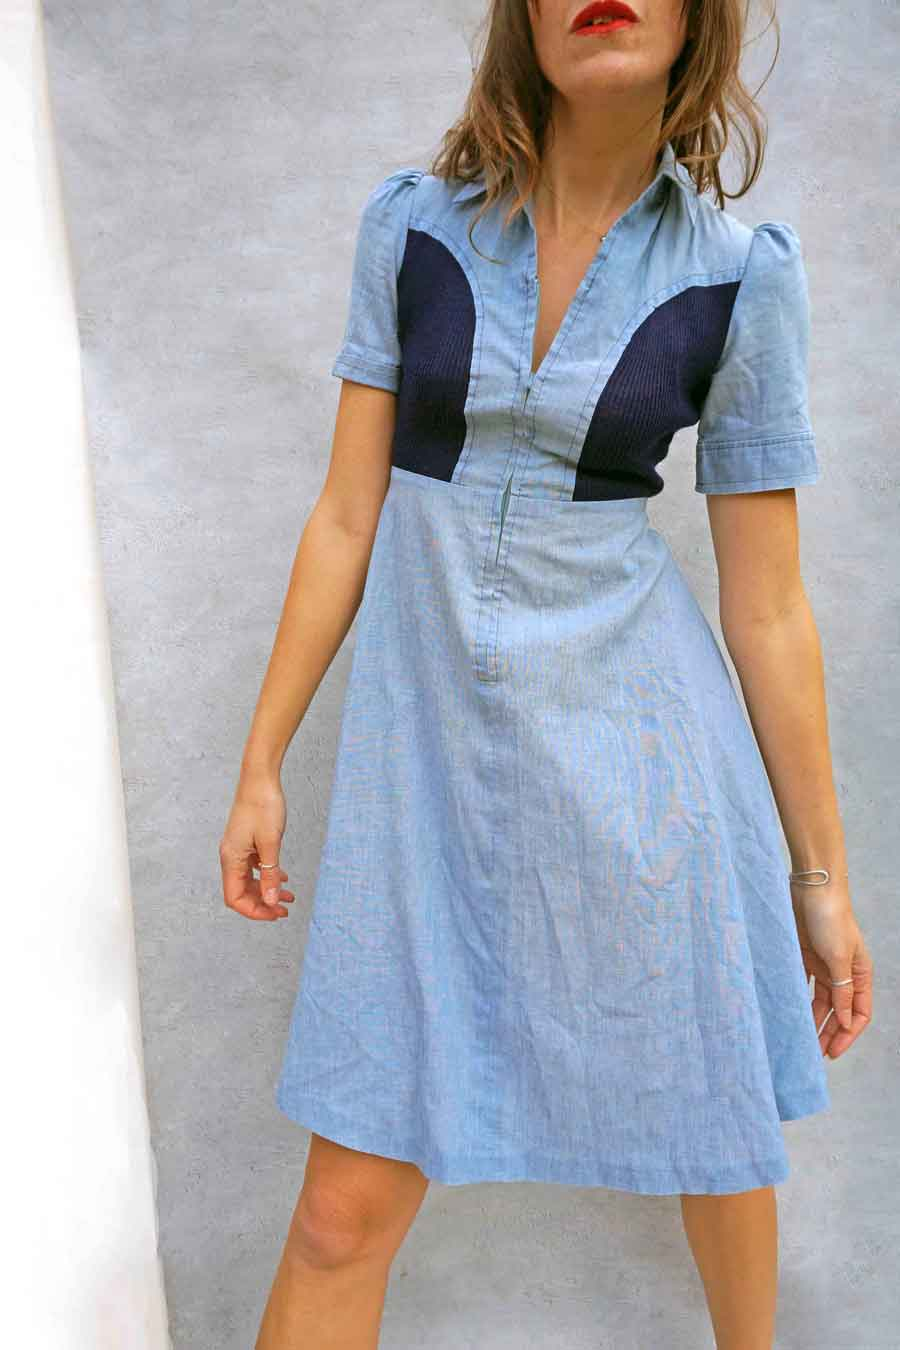 Vintage 70s Chambray Cotton Day Dress - vintage 70s dress - Ada's Attic Vintage